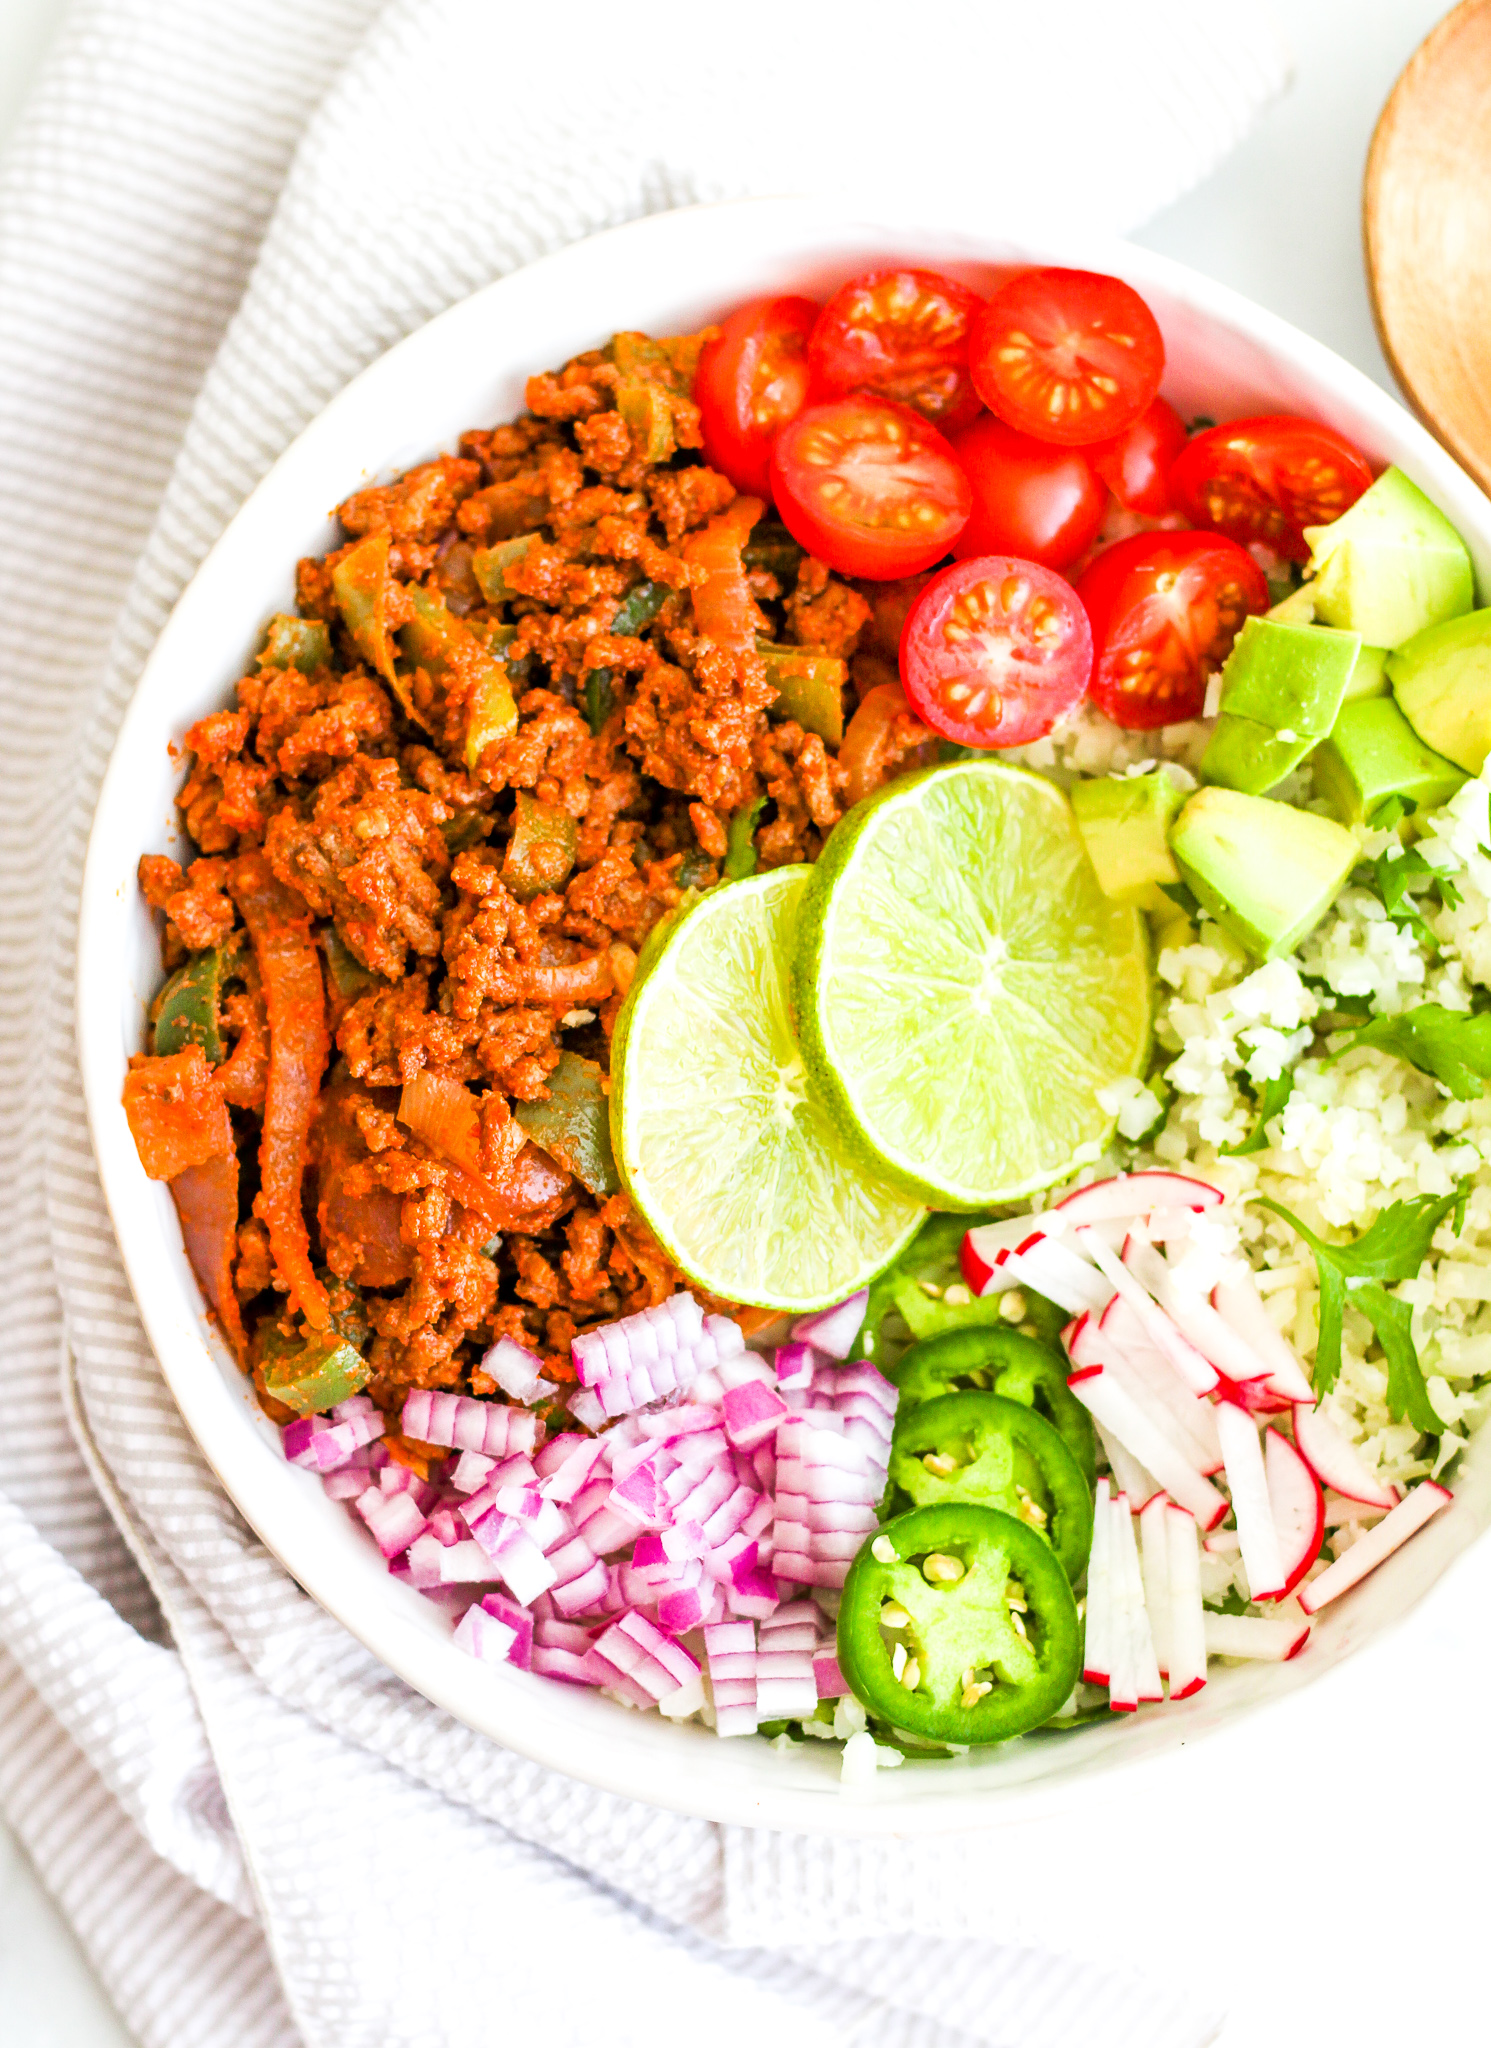 Easy Whole30 Taco Bowls